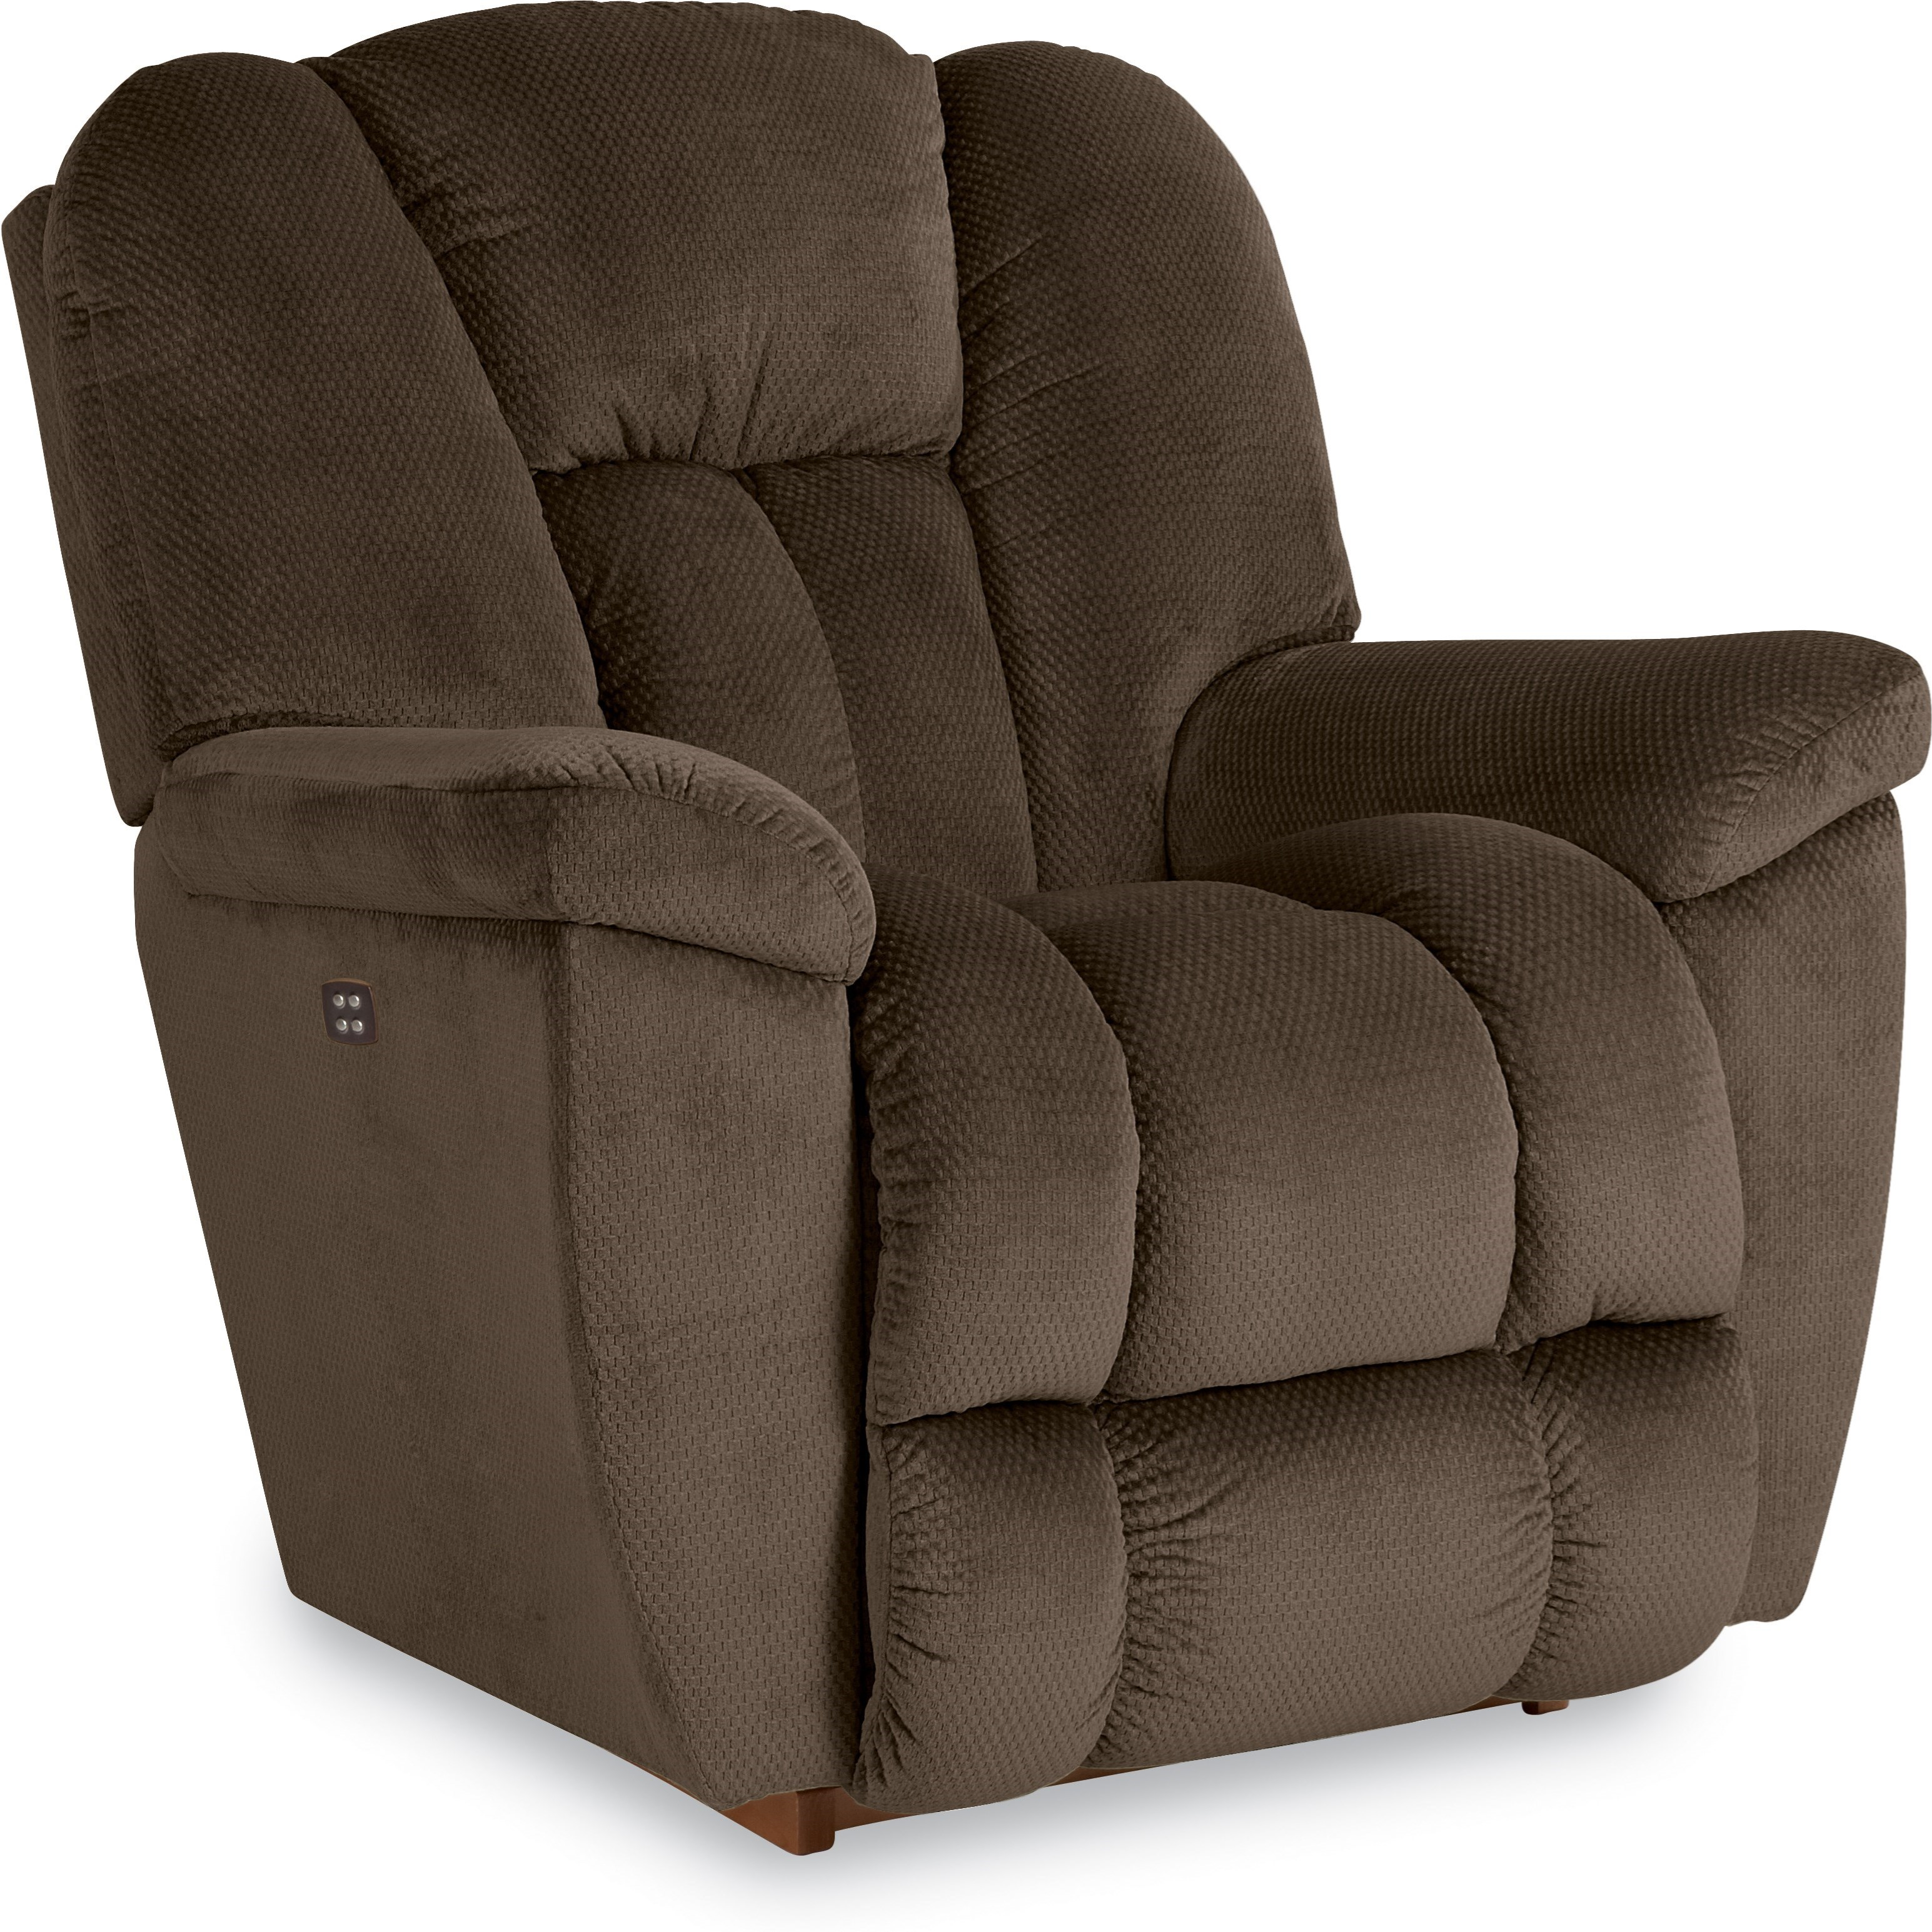 Maverick Power Recliner by La-Z-Boy at Bullard Furniture